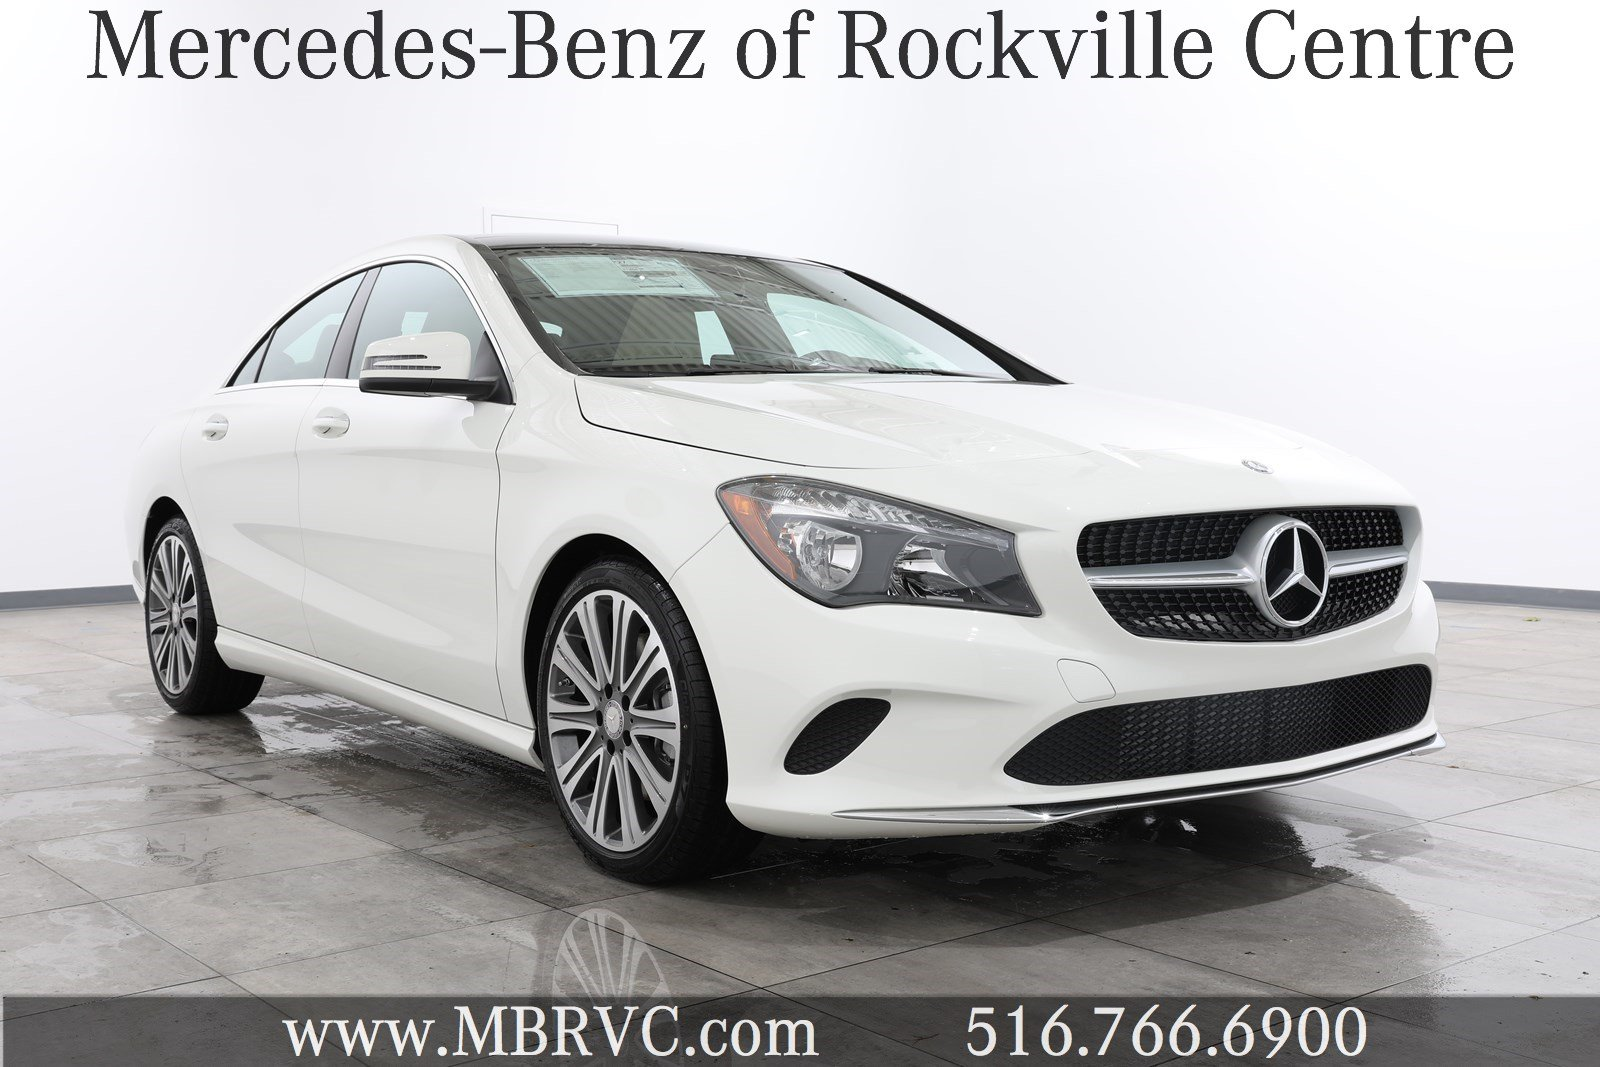 New 2018 mercedes benz cla cla 250 coupe in rockville for Mercedes benz rockville centre